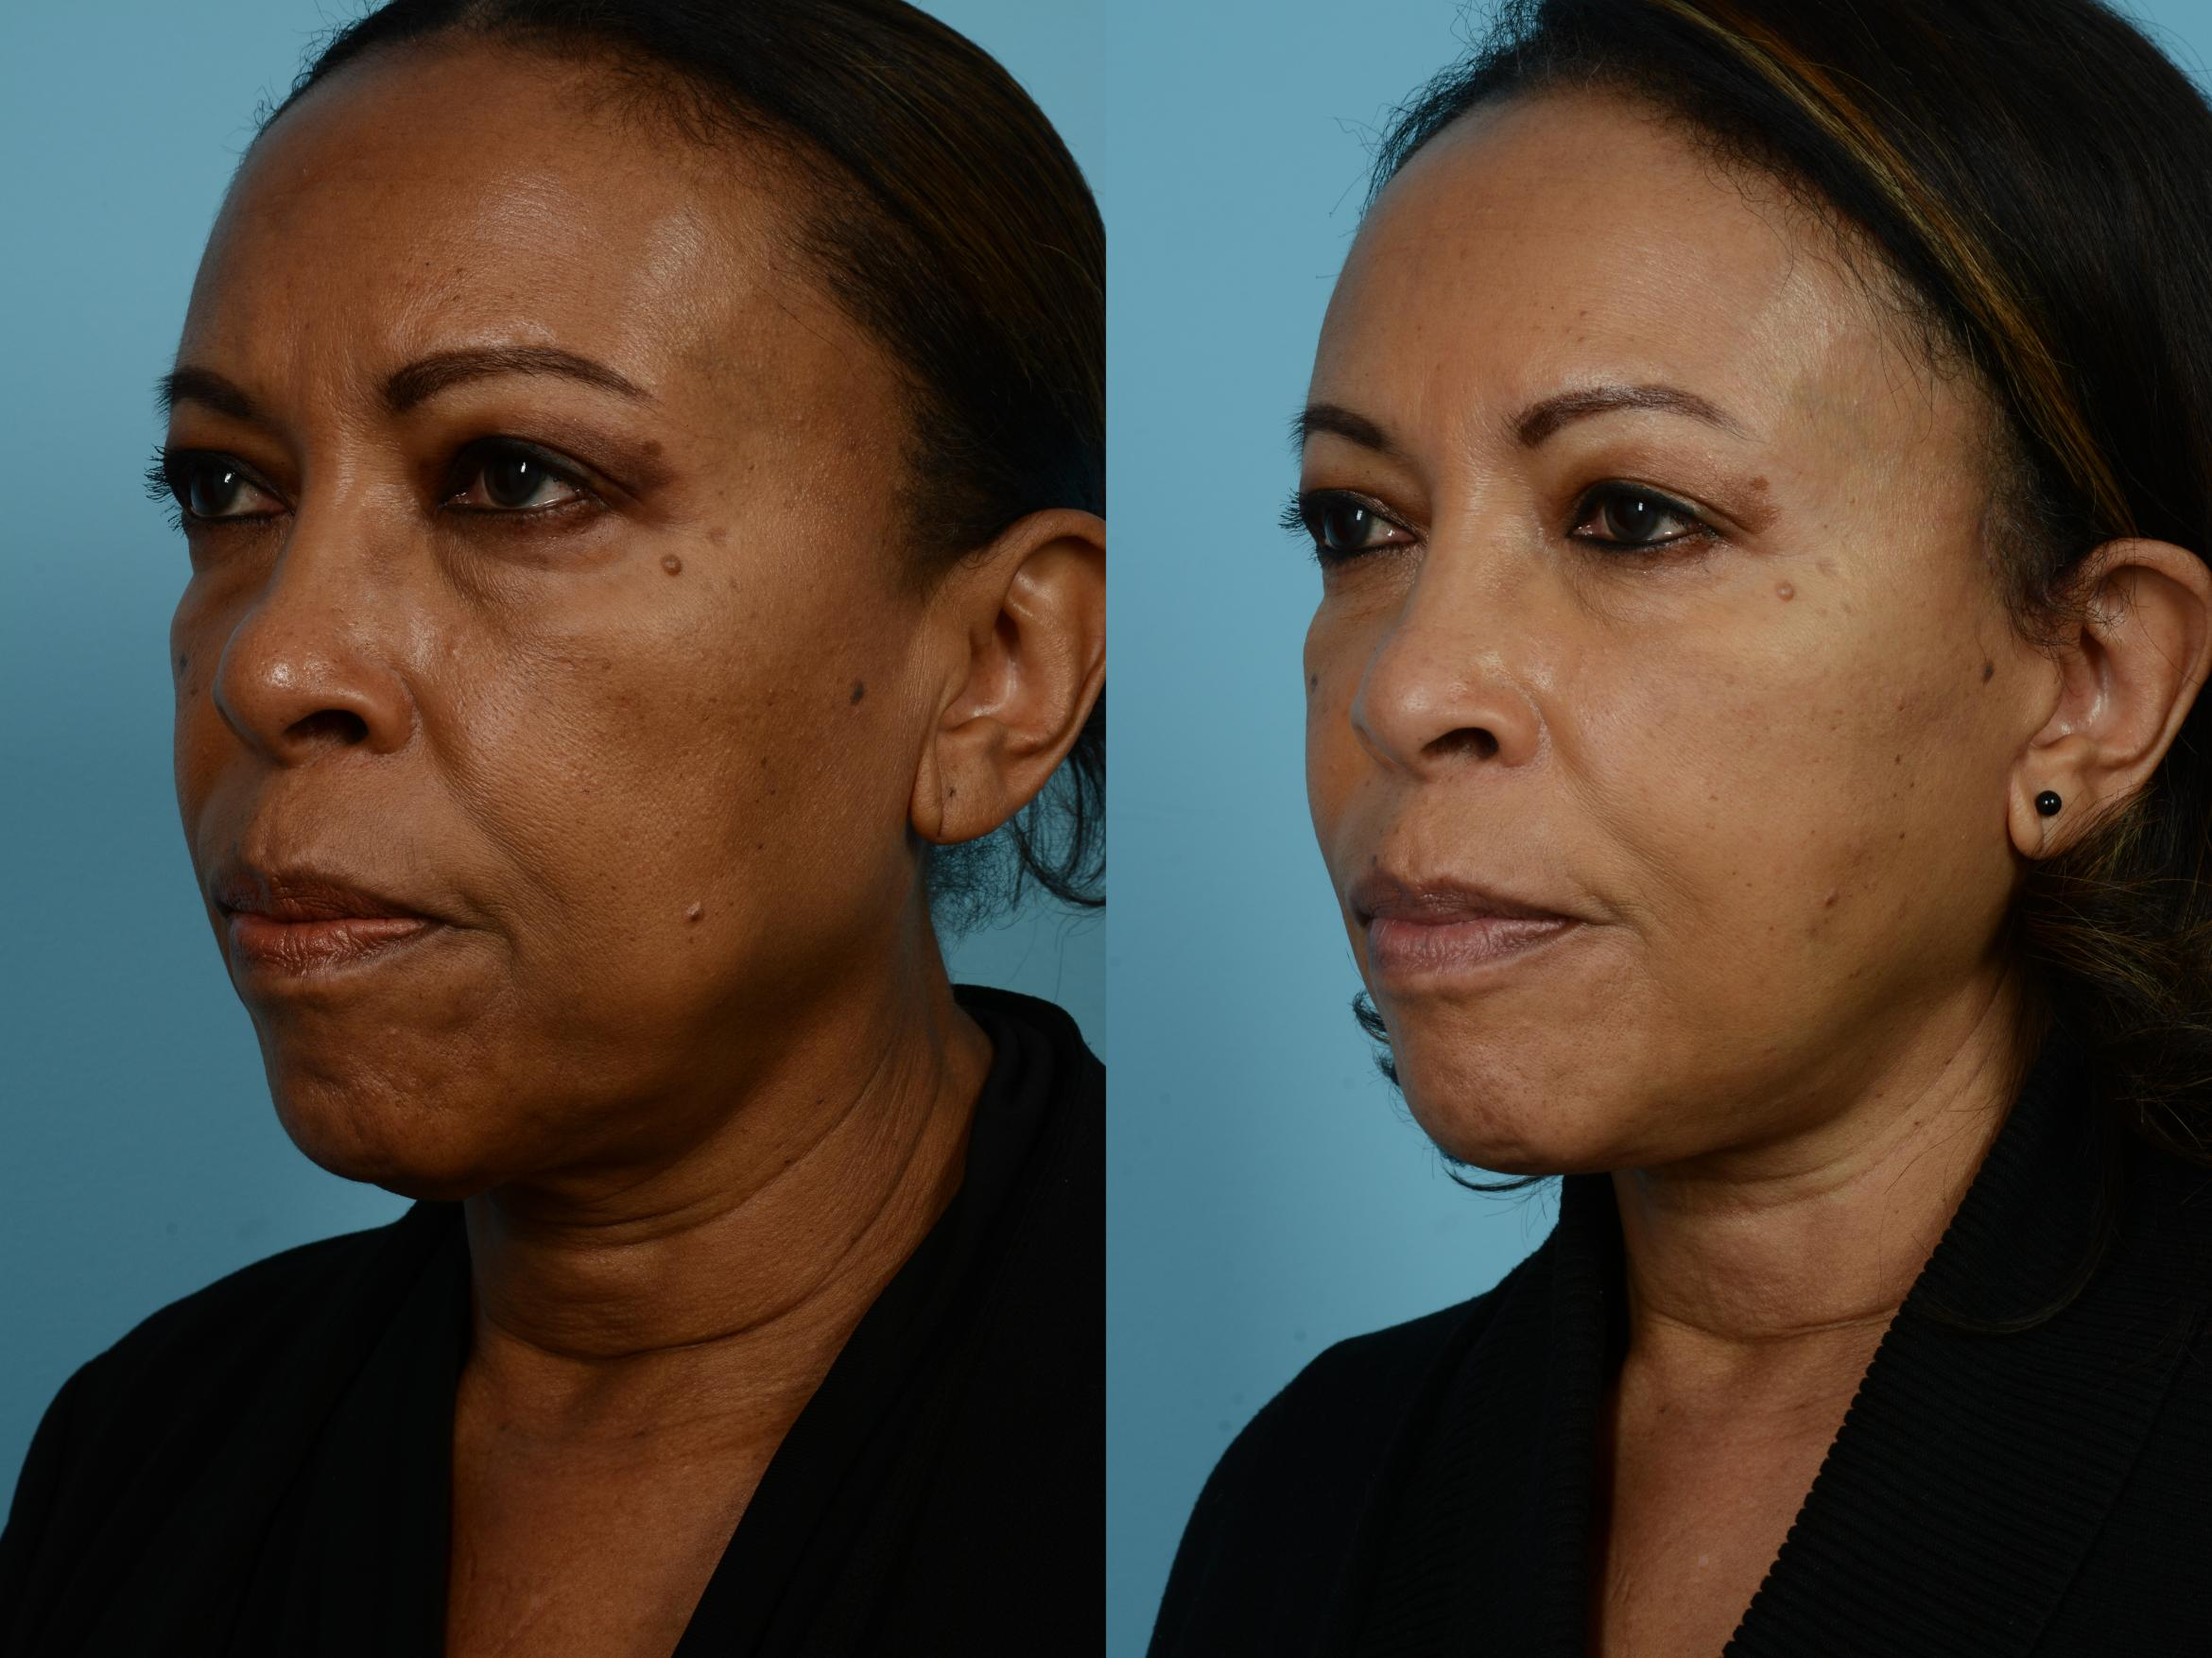 Dr. Sinno Facelift in Chicago, Illinois